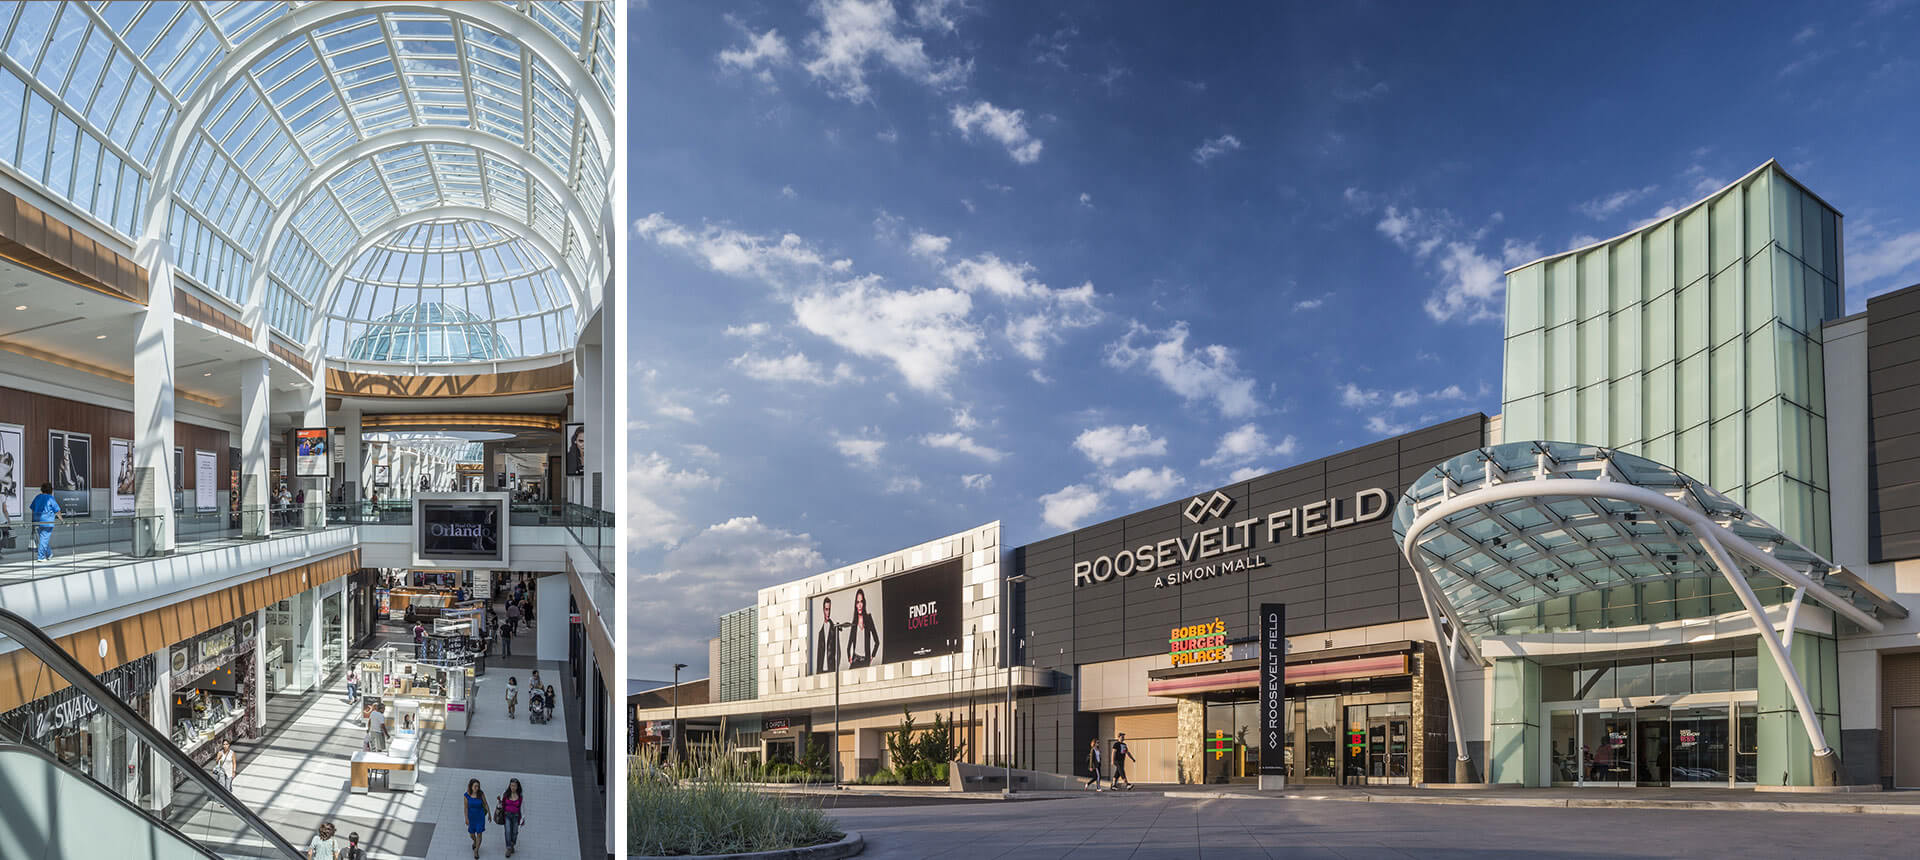 Find Roosevelt Field Mall jobs in New York. Search for full time or part time employment opportunities on Jobs2Careers.